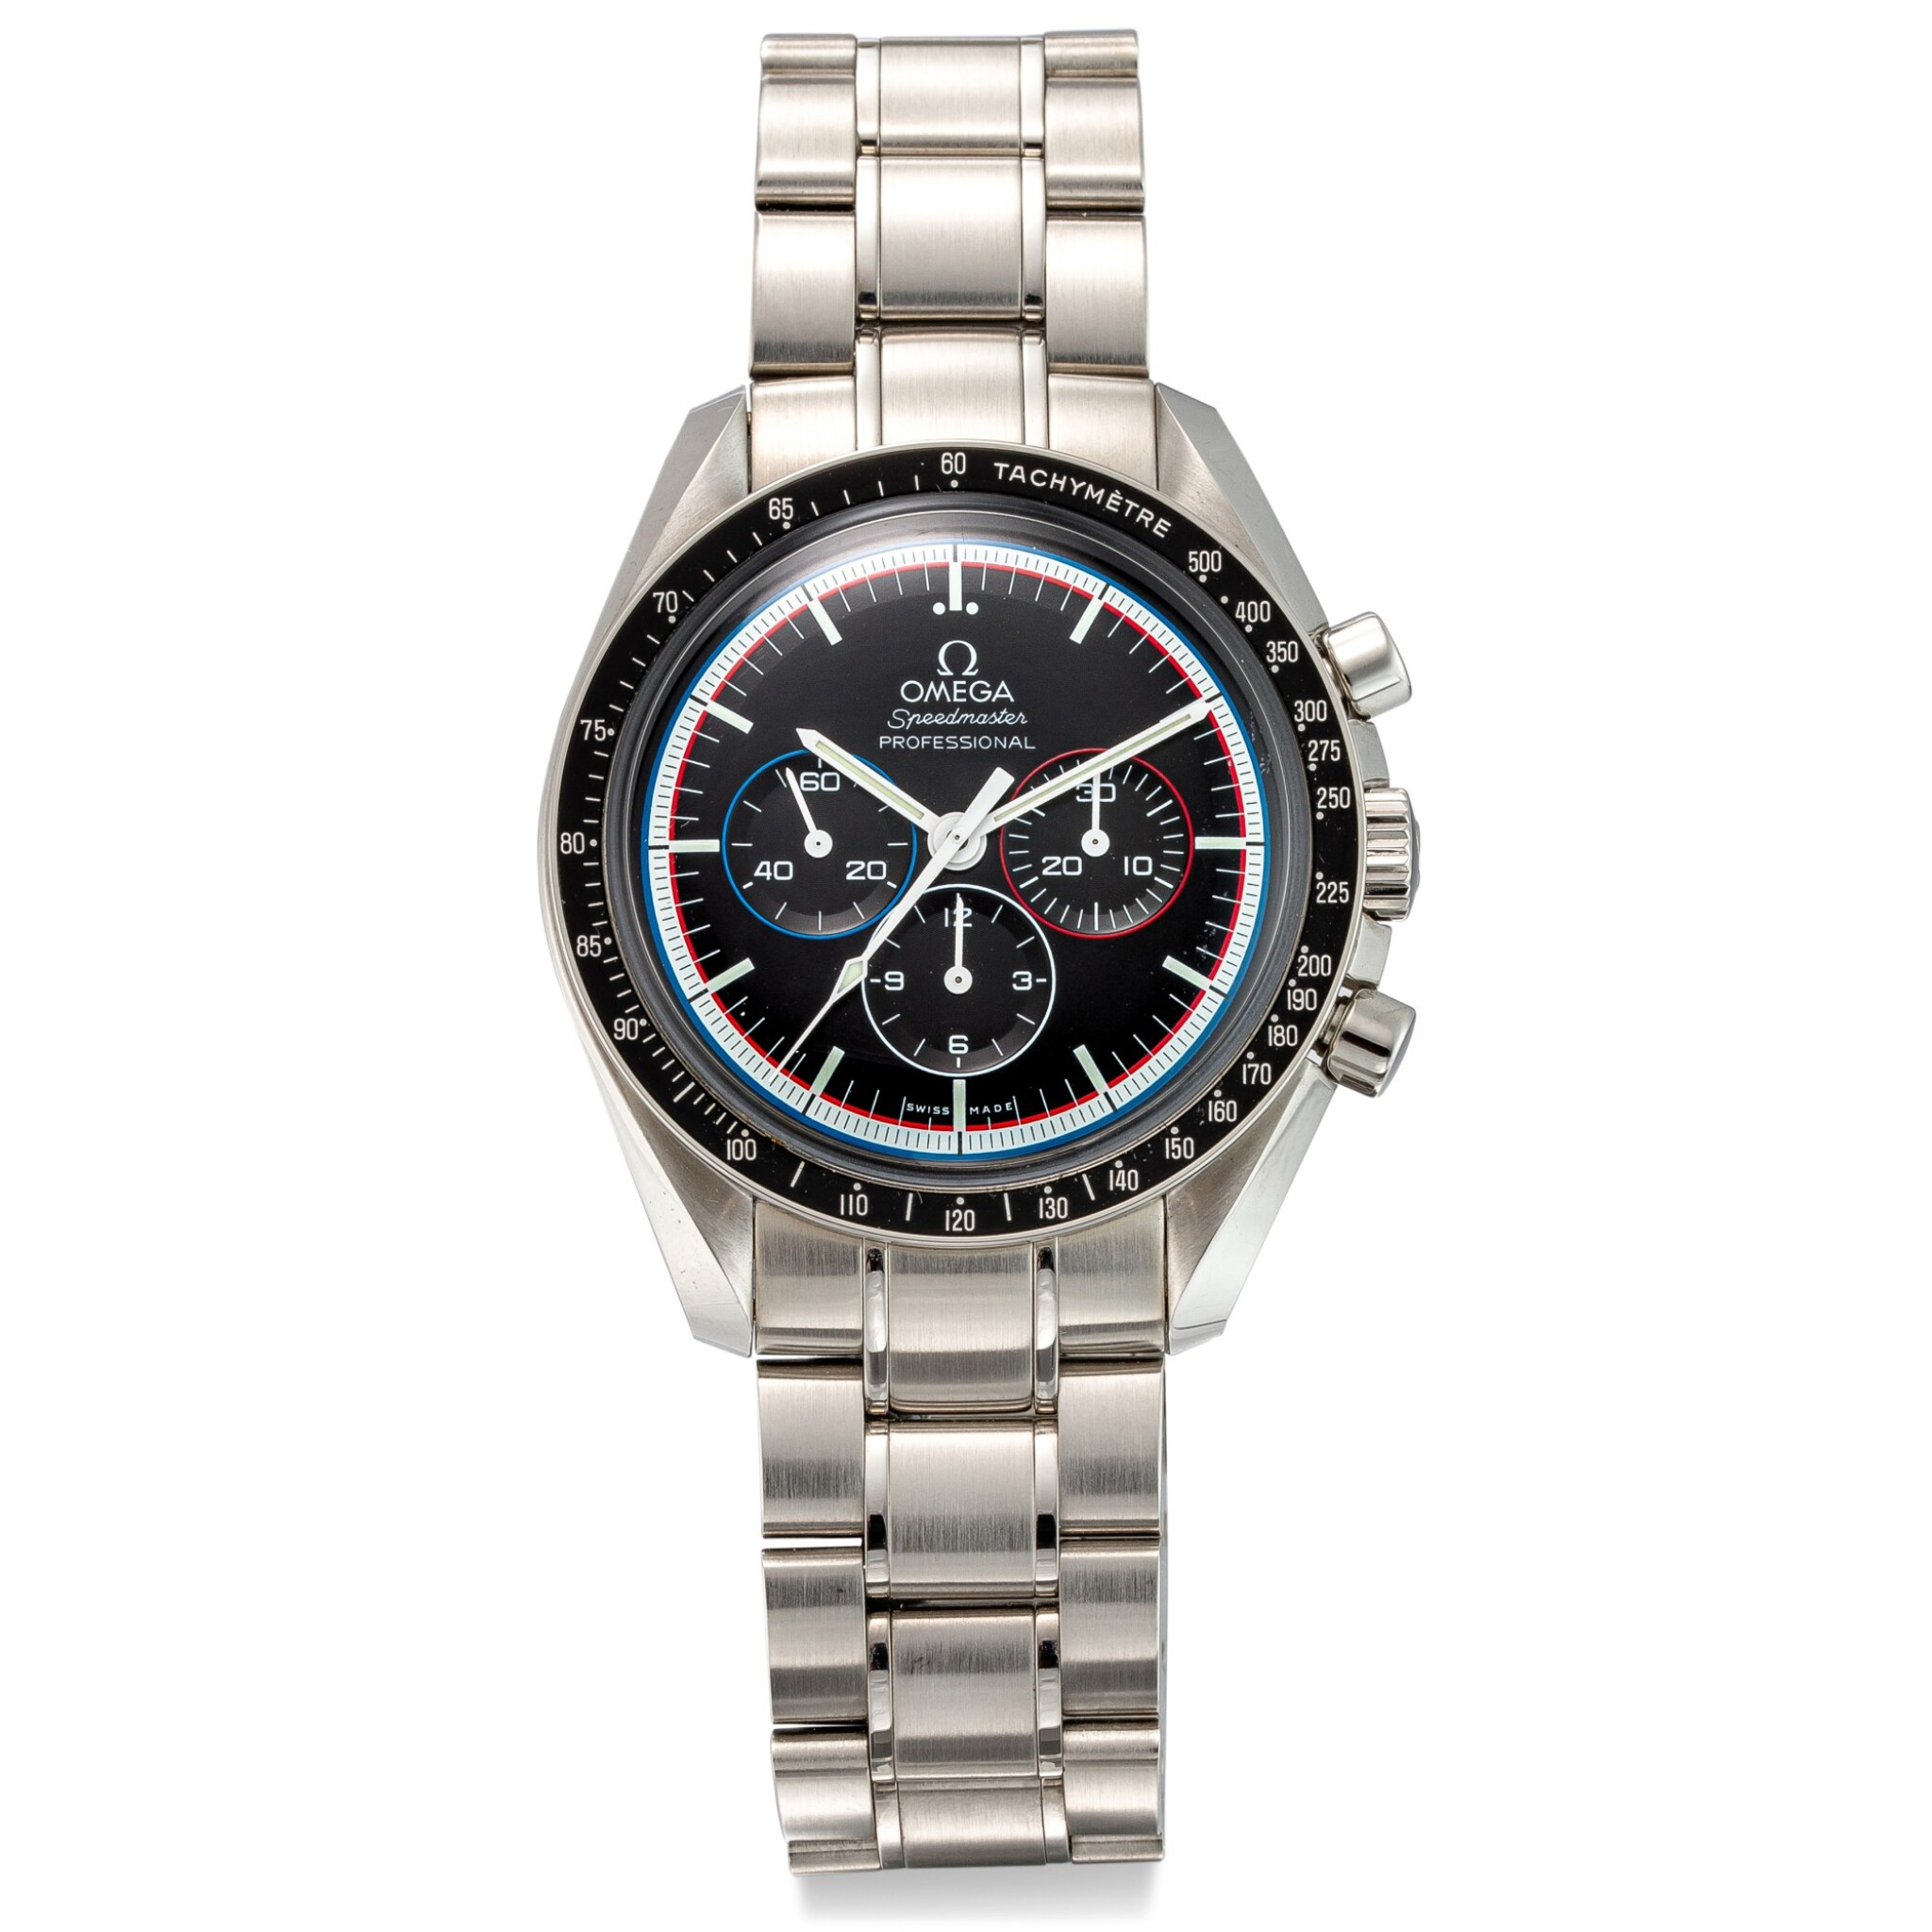 """View full screen - View 1 of Lot 8102. OMEGA   SPEEDMASTER PROFESSIONAL MOONWATCH, REFERENCE 311.30.42.30.01.003   A LIMITED EDITION STAINLESS STEEL CHRONOGRAPH WRISTWATCH WITH BRACELET, MADE TO COMMEMORATE THE 40TH ANNIVERSARY OF """"APOLLO 15"""" MISSION, CIRCA 2011   歐米茄   超霸系列專業月球錶 型號311.30.42.30.01.003   限量版精鋼計時鏈帶腕錶,為紀念阿波羅15任務40週年而製,約2011年製."""